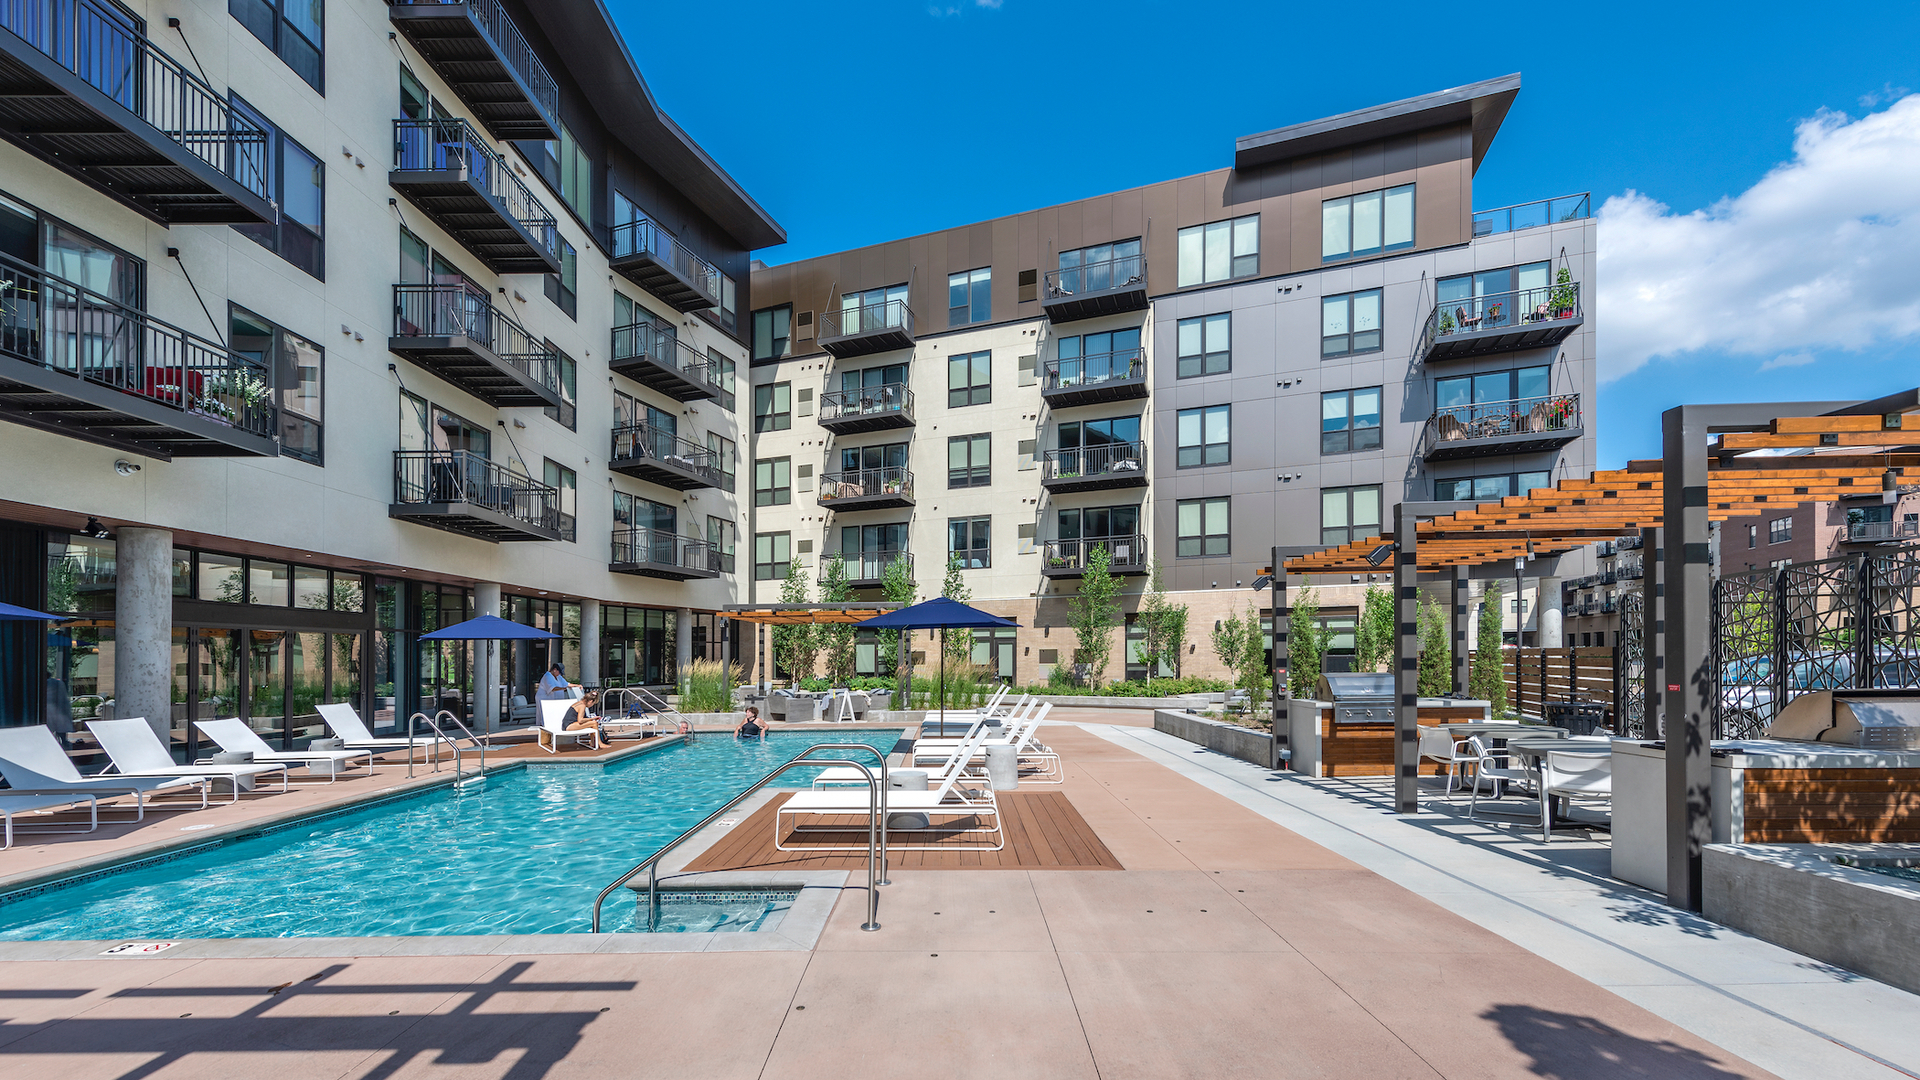 The modern outdoor pool area at Parkway 25, featuring outdoor amenities and chaise lounge chairs for a relaxing experience.